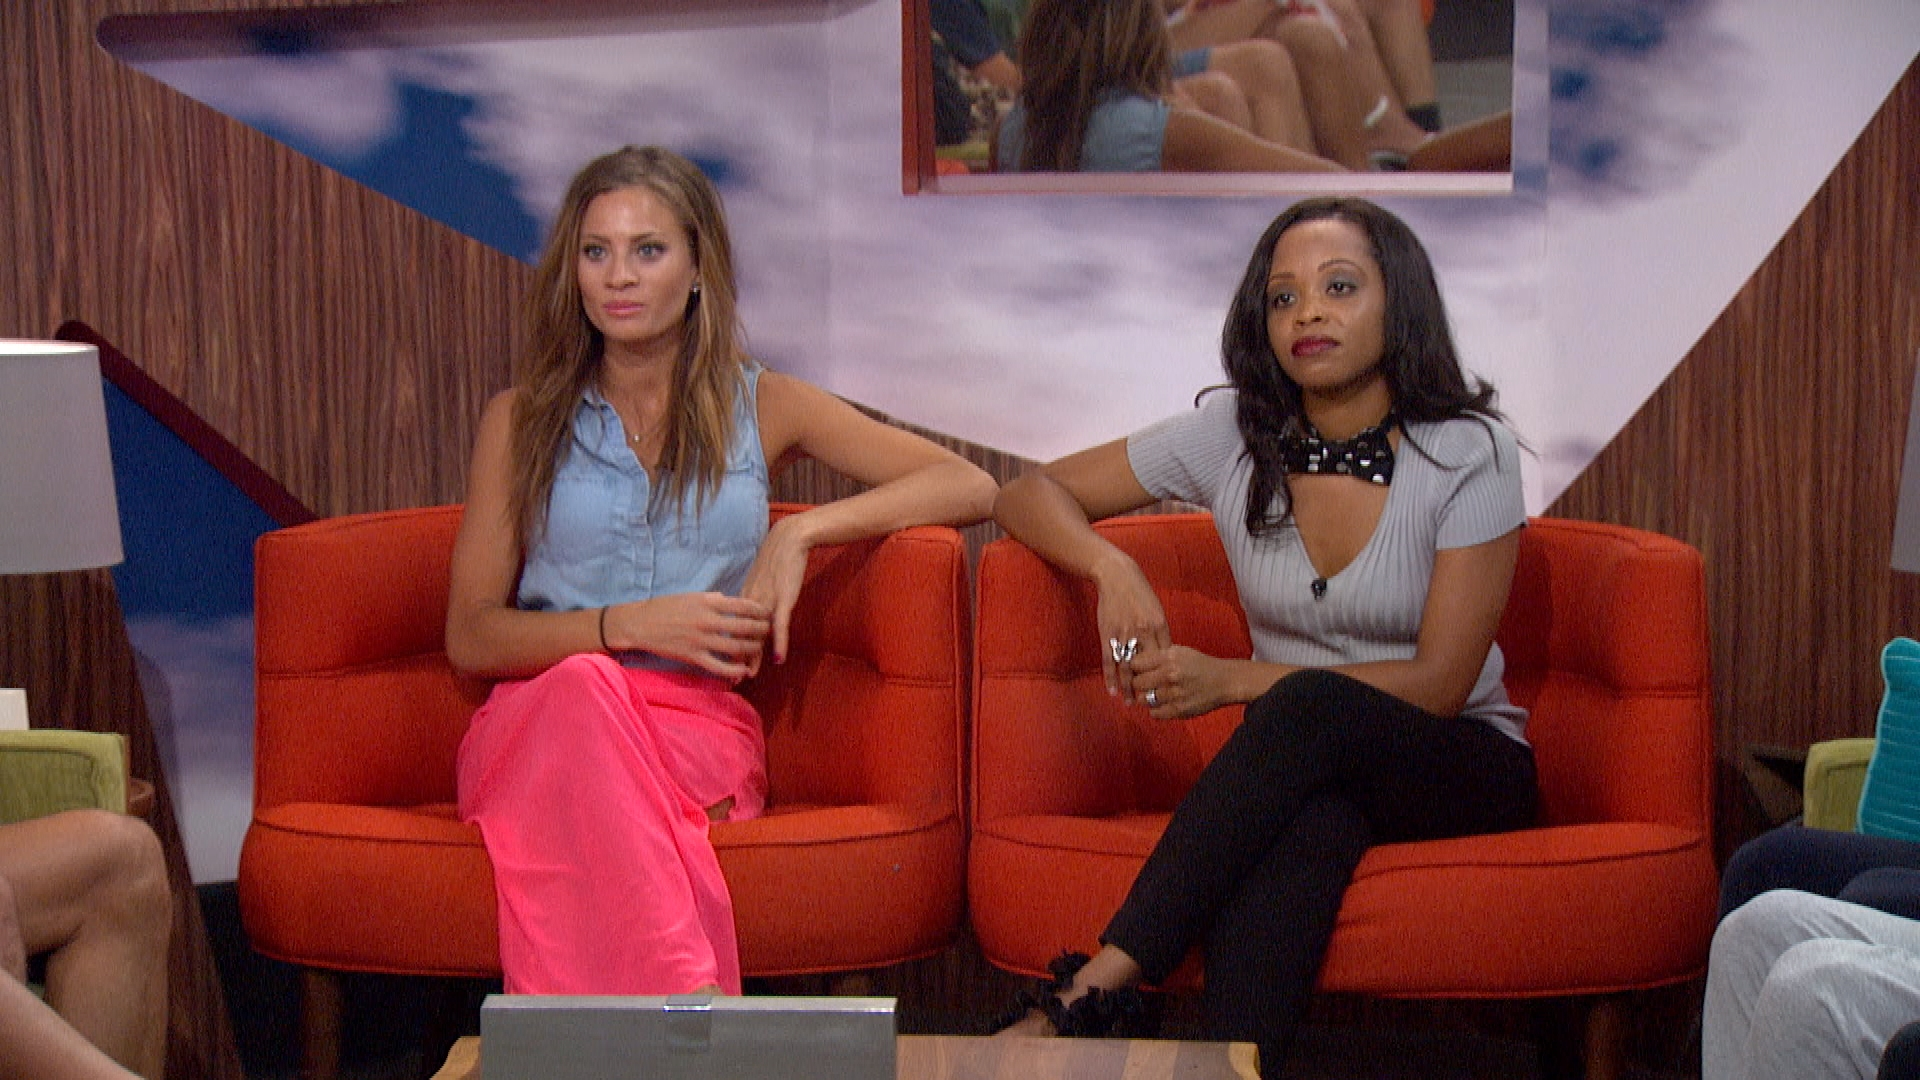 Amber and Jocasta up for eviction